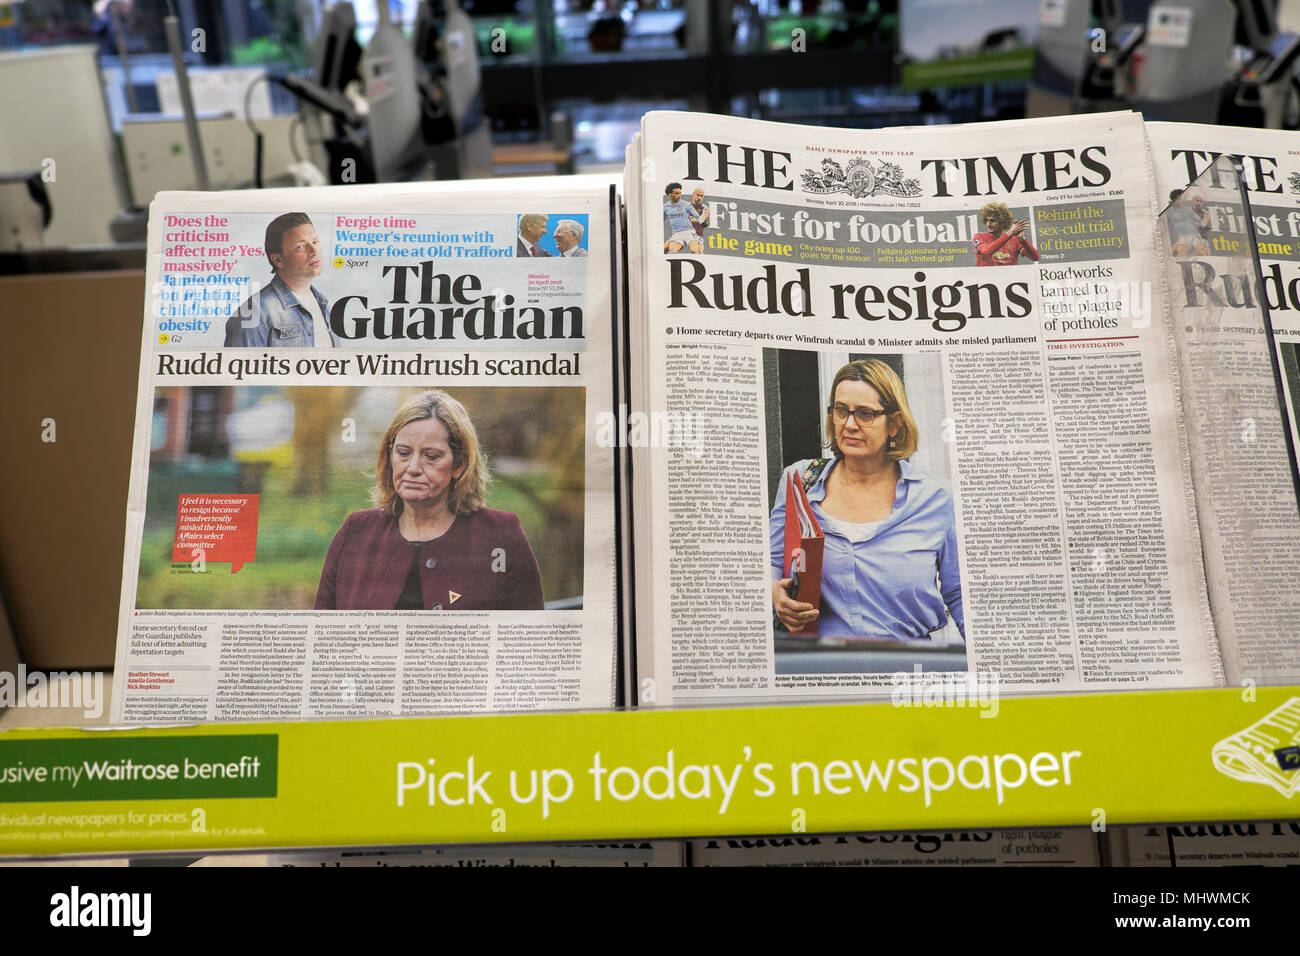 'Amber Rudd quits over Windrush scandal' news headline in The Guardian and 'Rudd resigns' on front page of The Times newspaper headlines 30 April 2018 - Stock Image